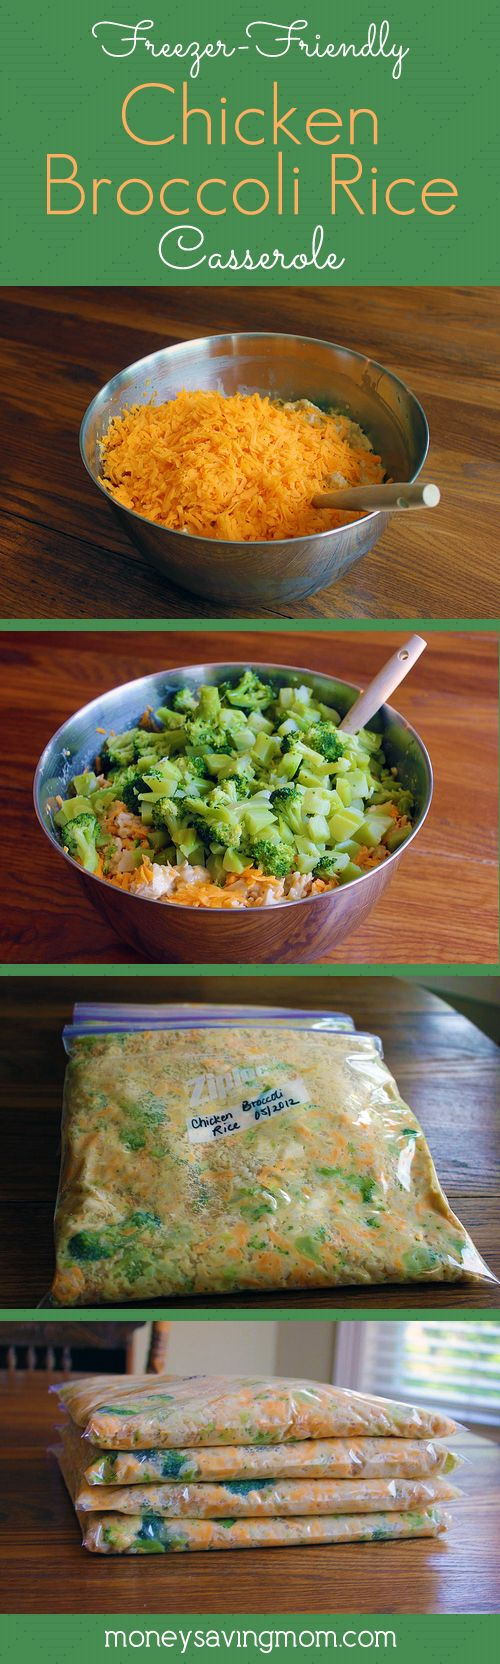 t-shirts with print Chicken Broccoli Rice Casserole | Chicken Broccoli Rice, Broccoli Rice Casserole and Broccoli Rice